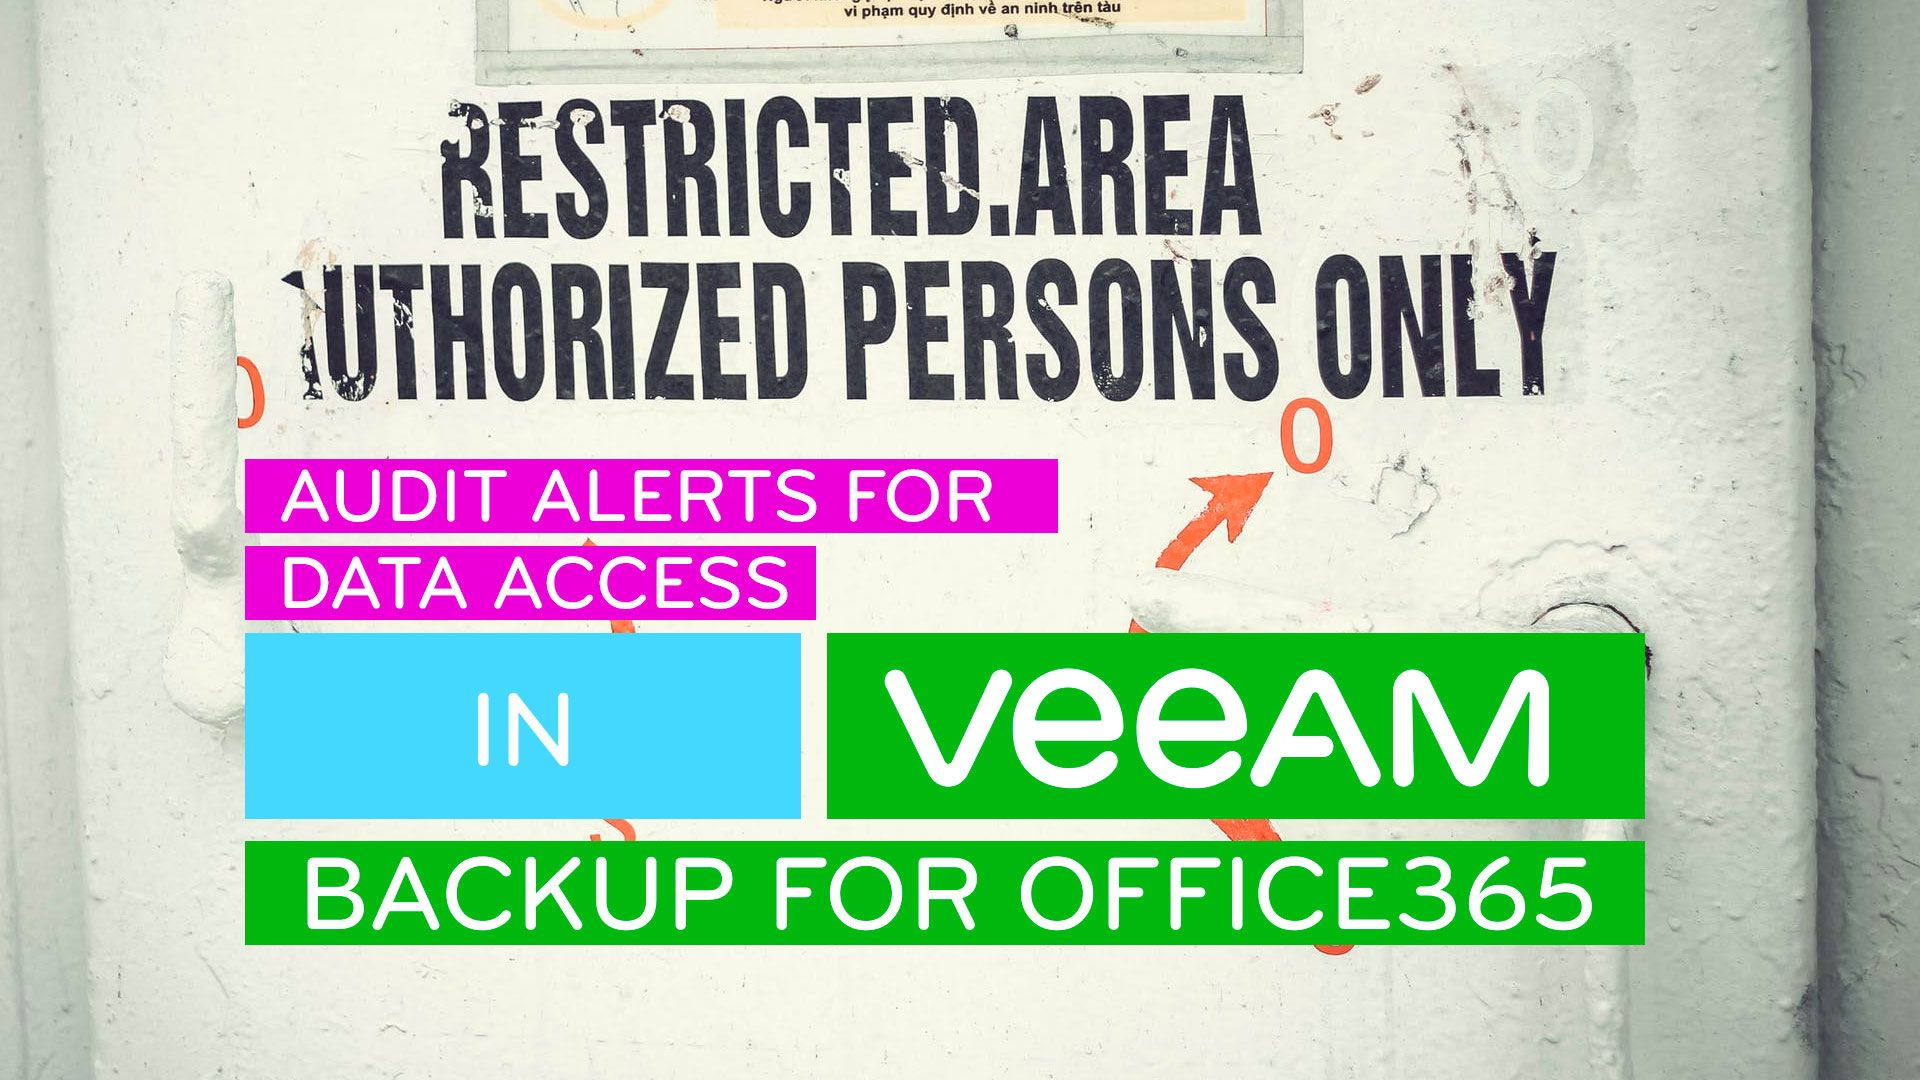 Get a notification when restricted user data is accessed in Veeam Backup for Office365